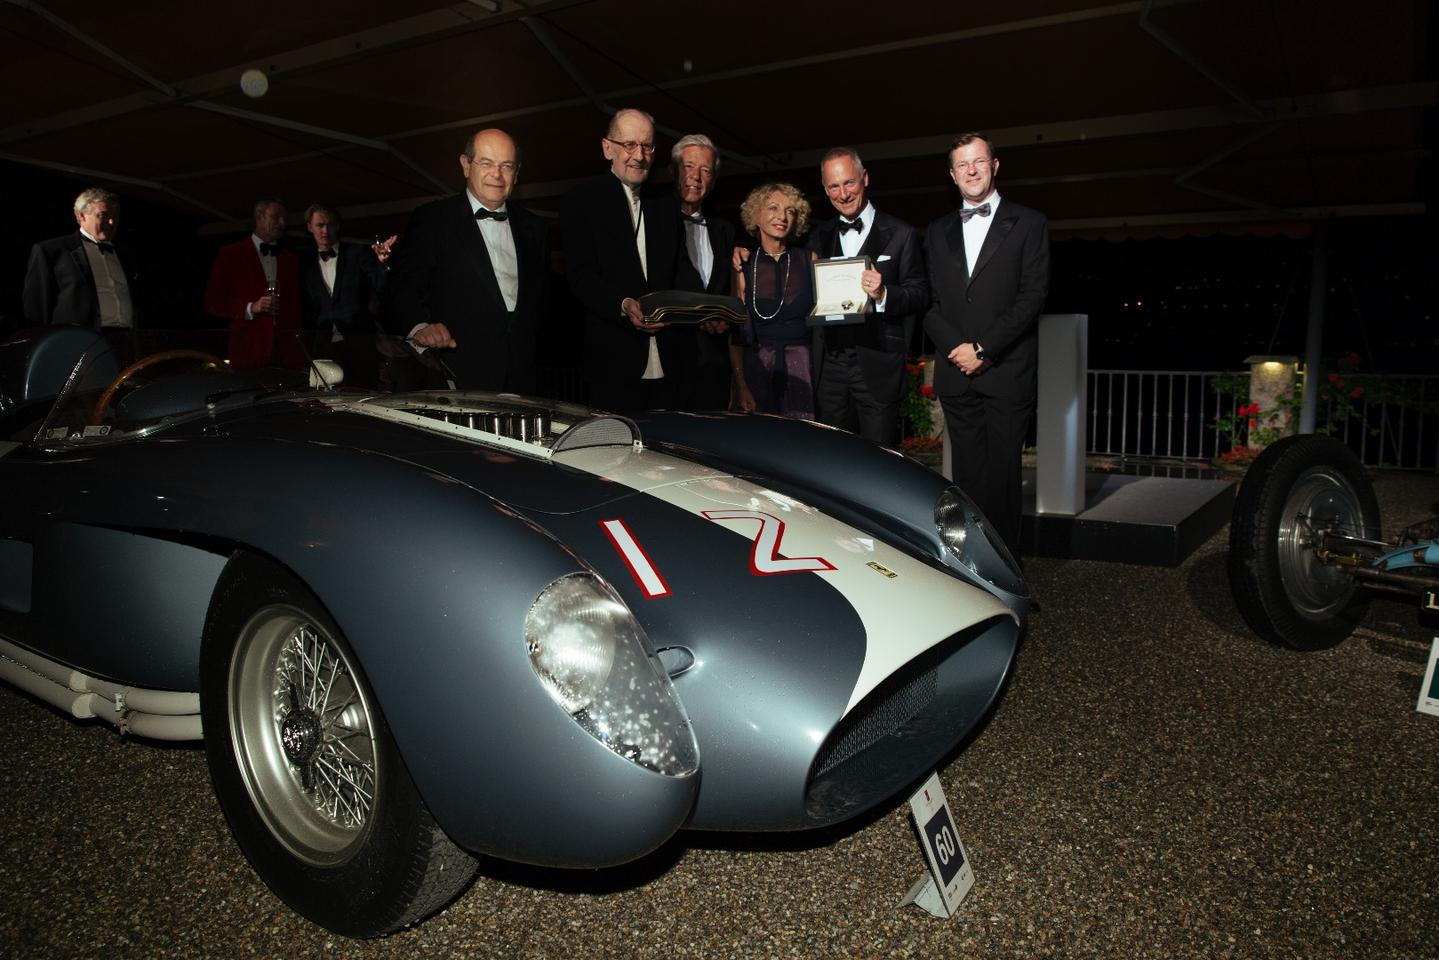 Andreas Mohringer's recently restored 1958 Ferrari 335 Sport Spider won theTrofeo BMW Group, the outright Best of Show award decided by the jury.